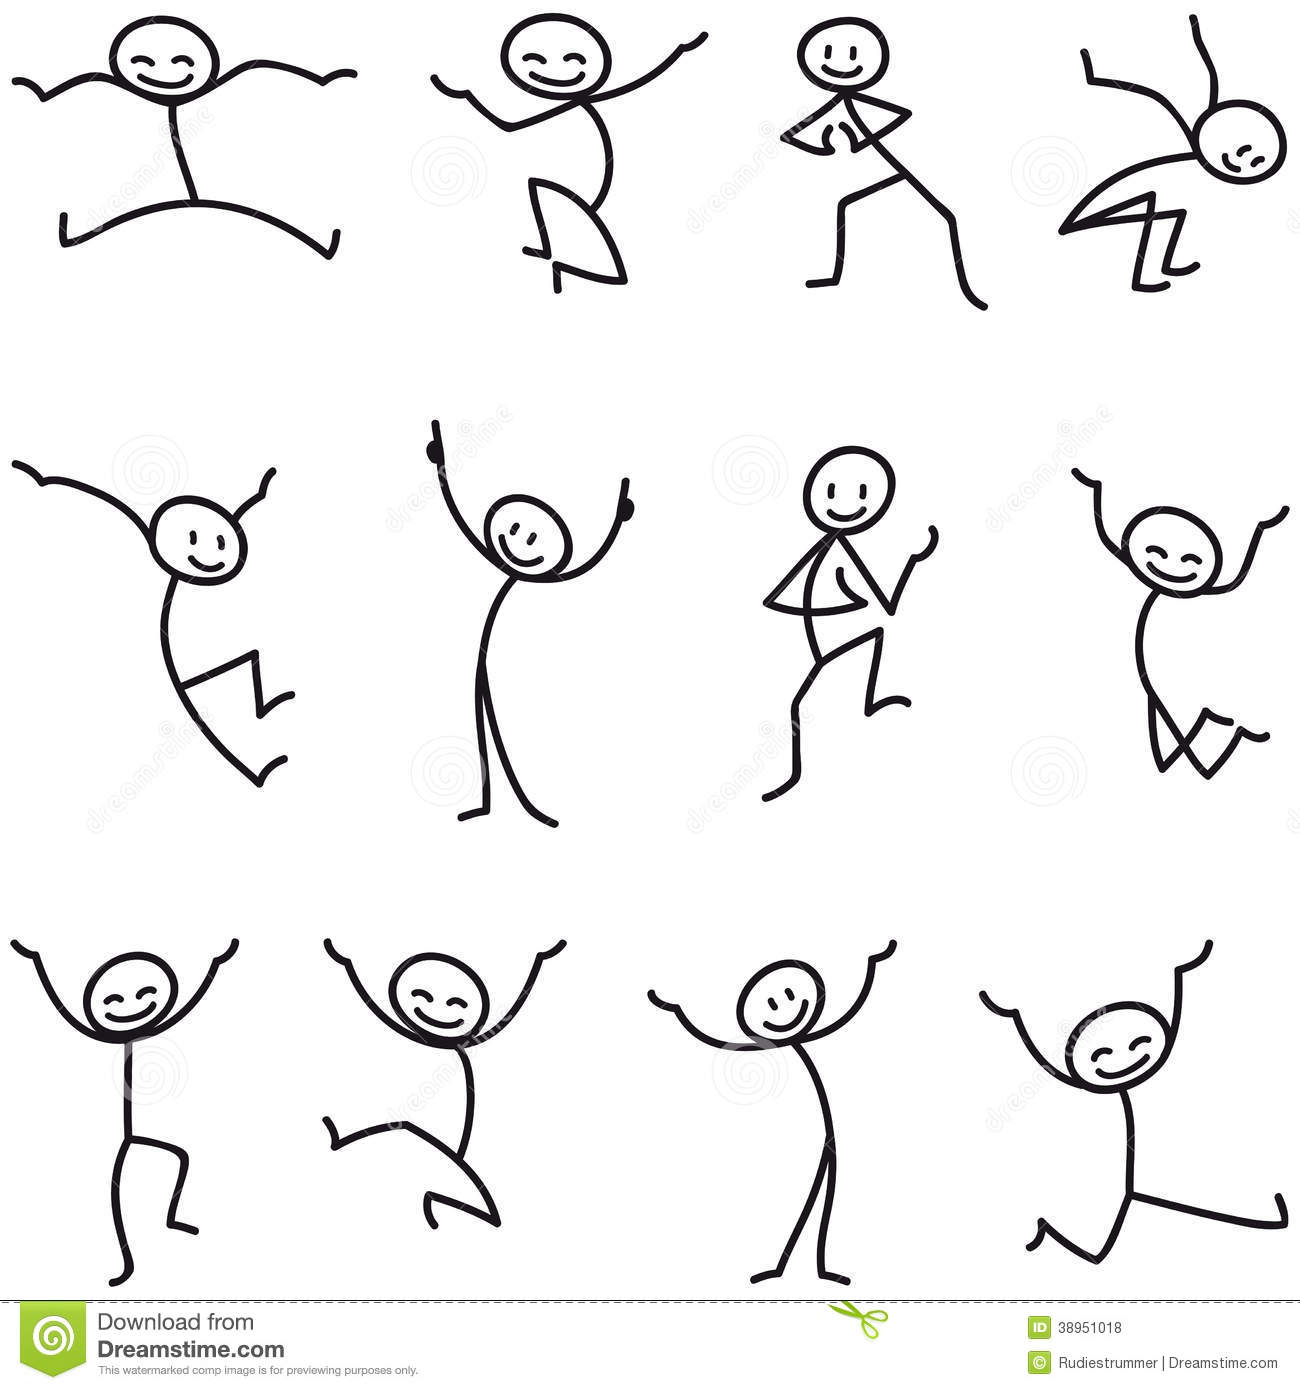 Stick Man Stick Figure Happy Jumping Celebrating.